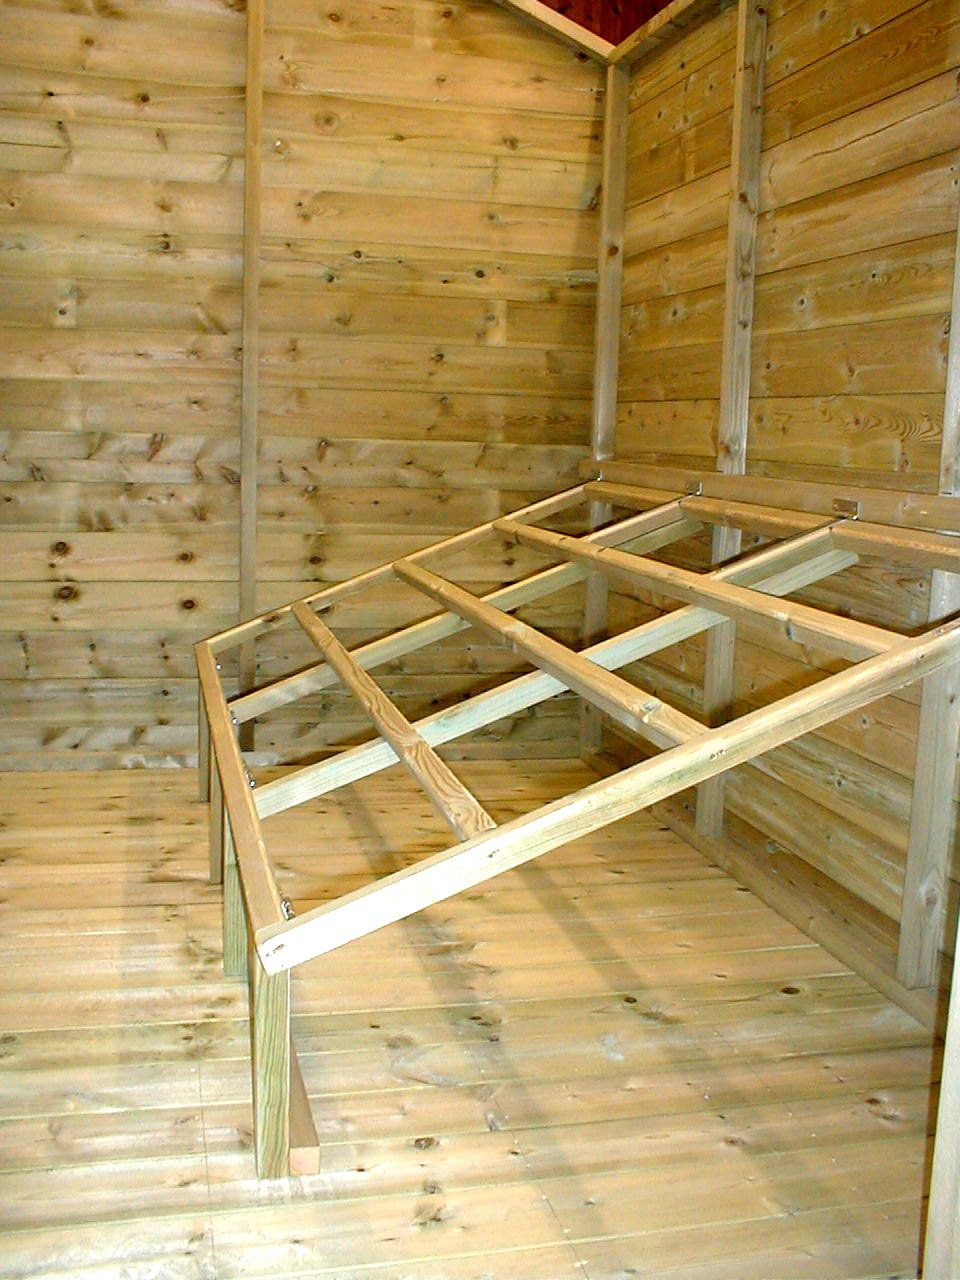 Hinged roost folds up for easy cleaning.